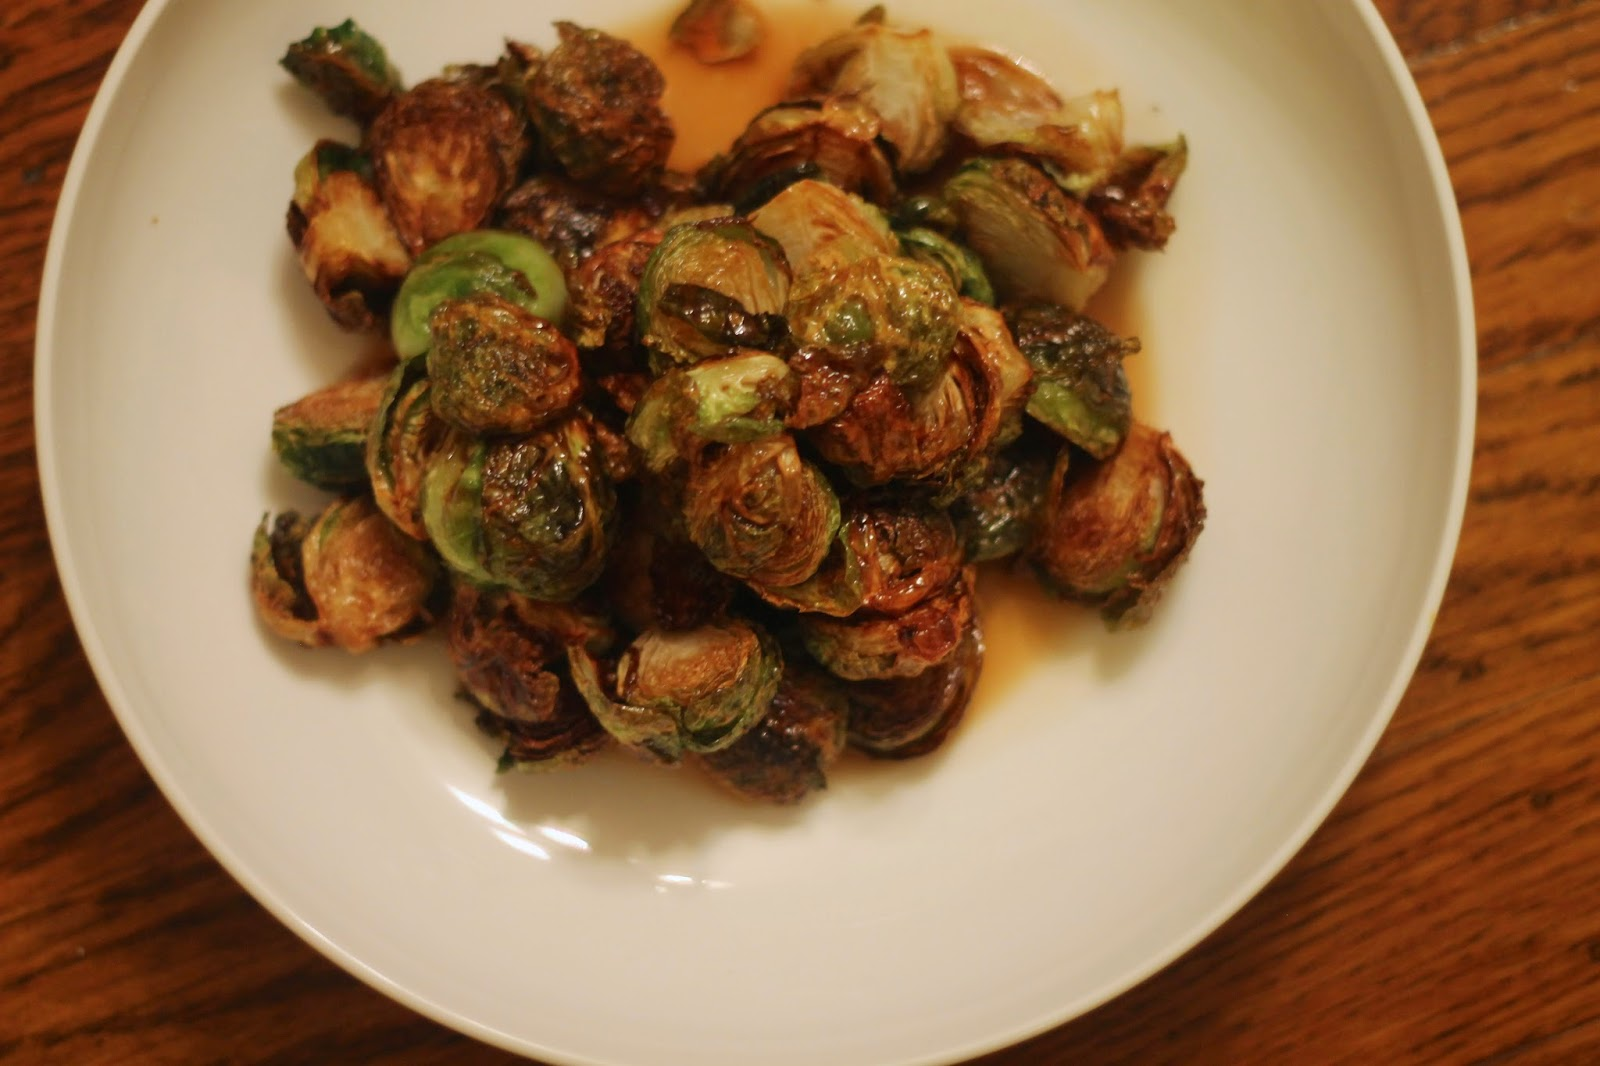 Gastrique Cuisine Fried Brussels Sprouts With Apple Gastrique